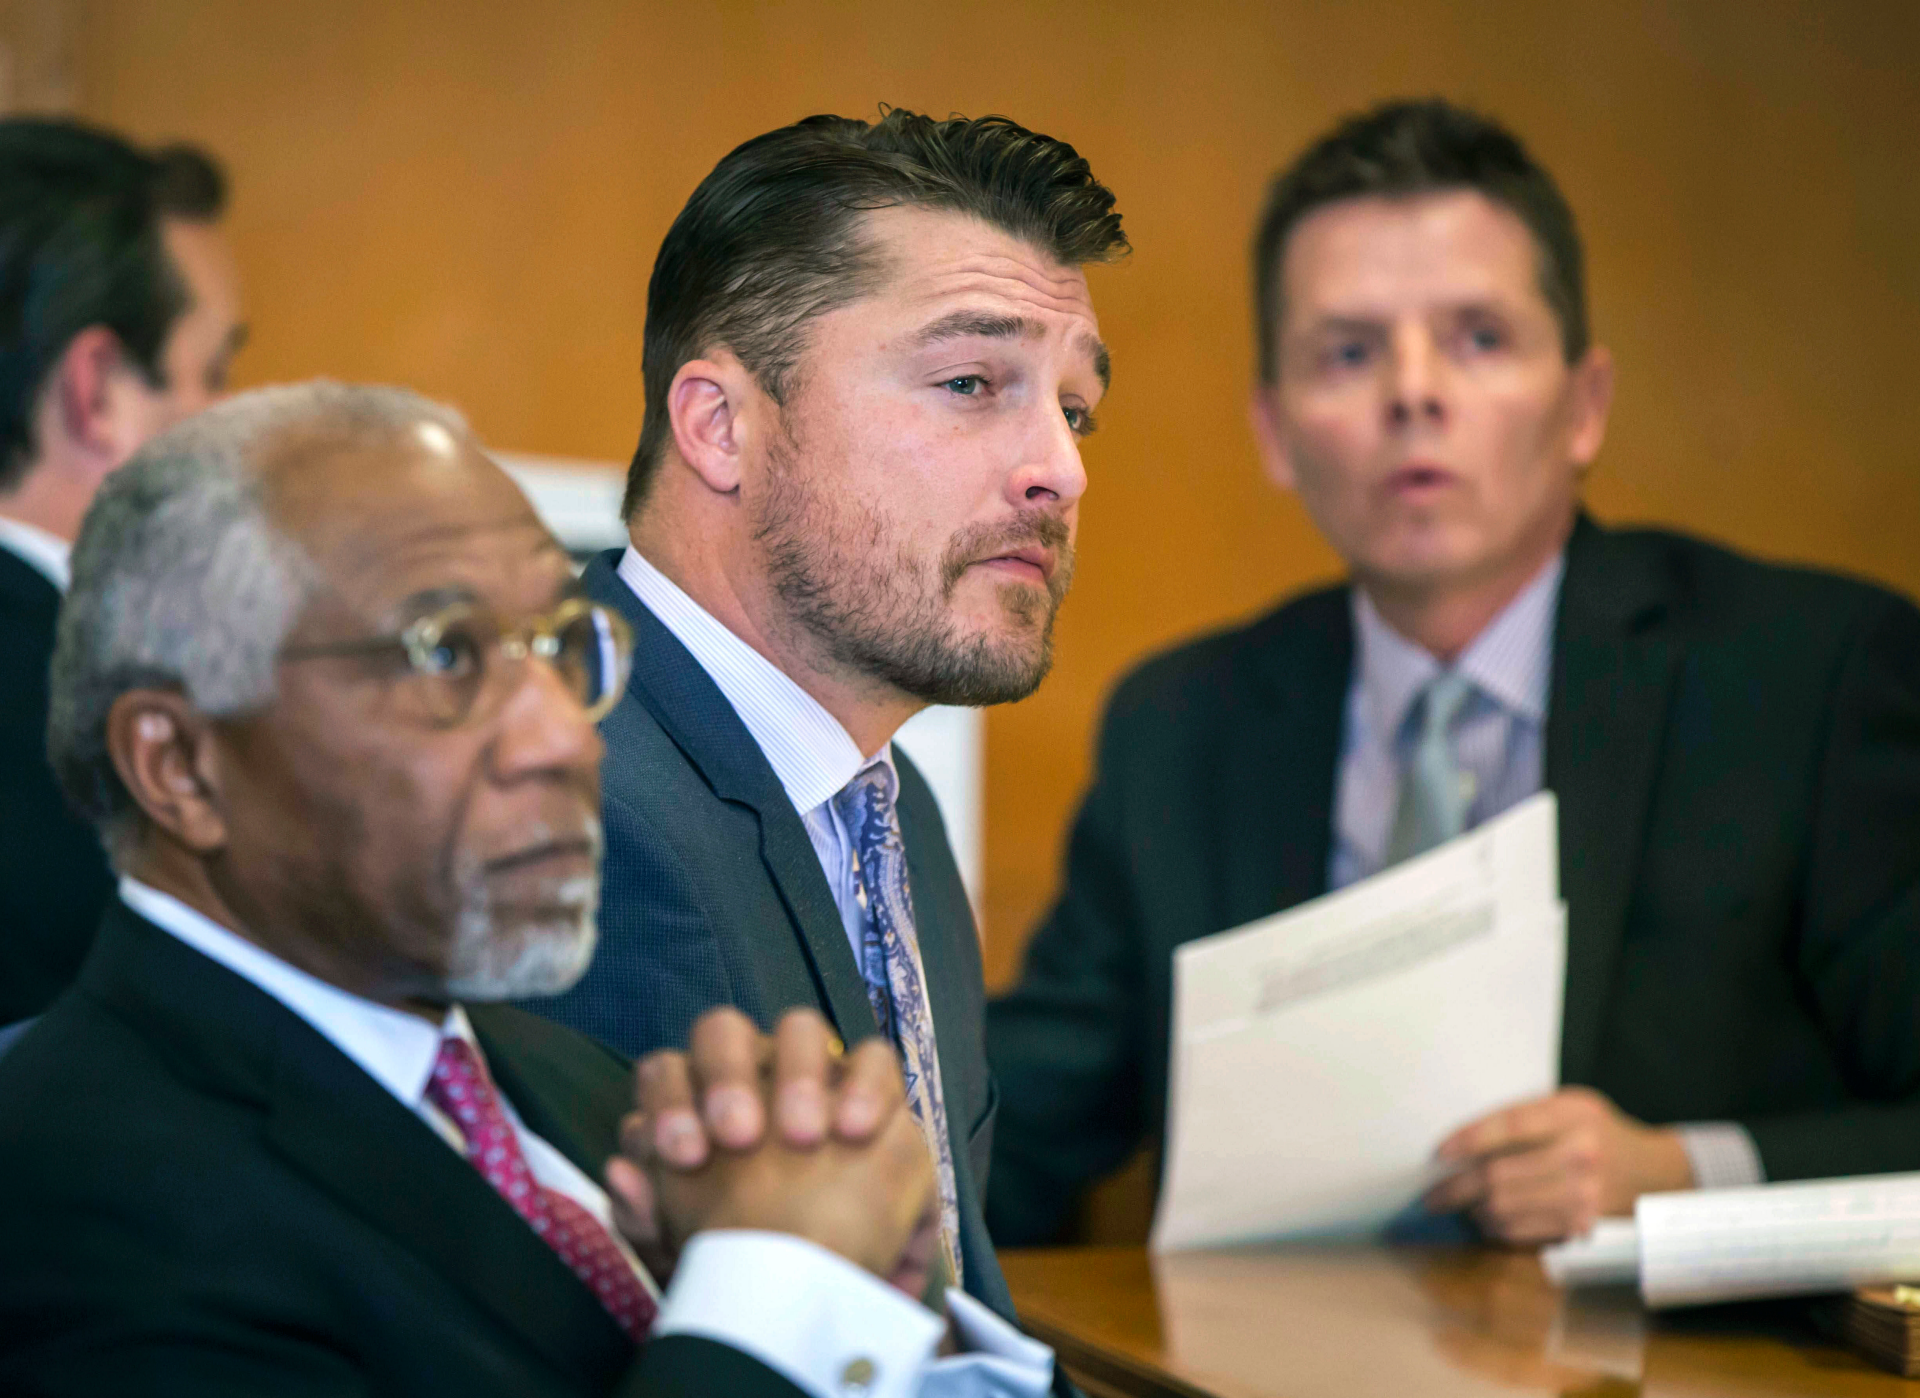 'Bachelor' alum Chris Soules' sentencing delayed in fatal crash